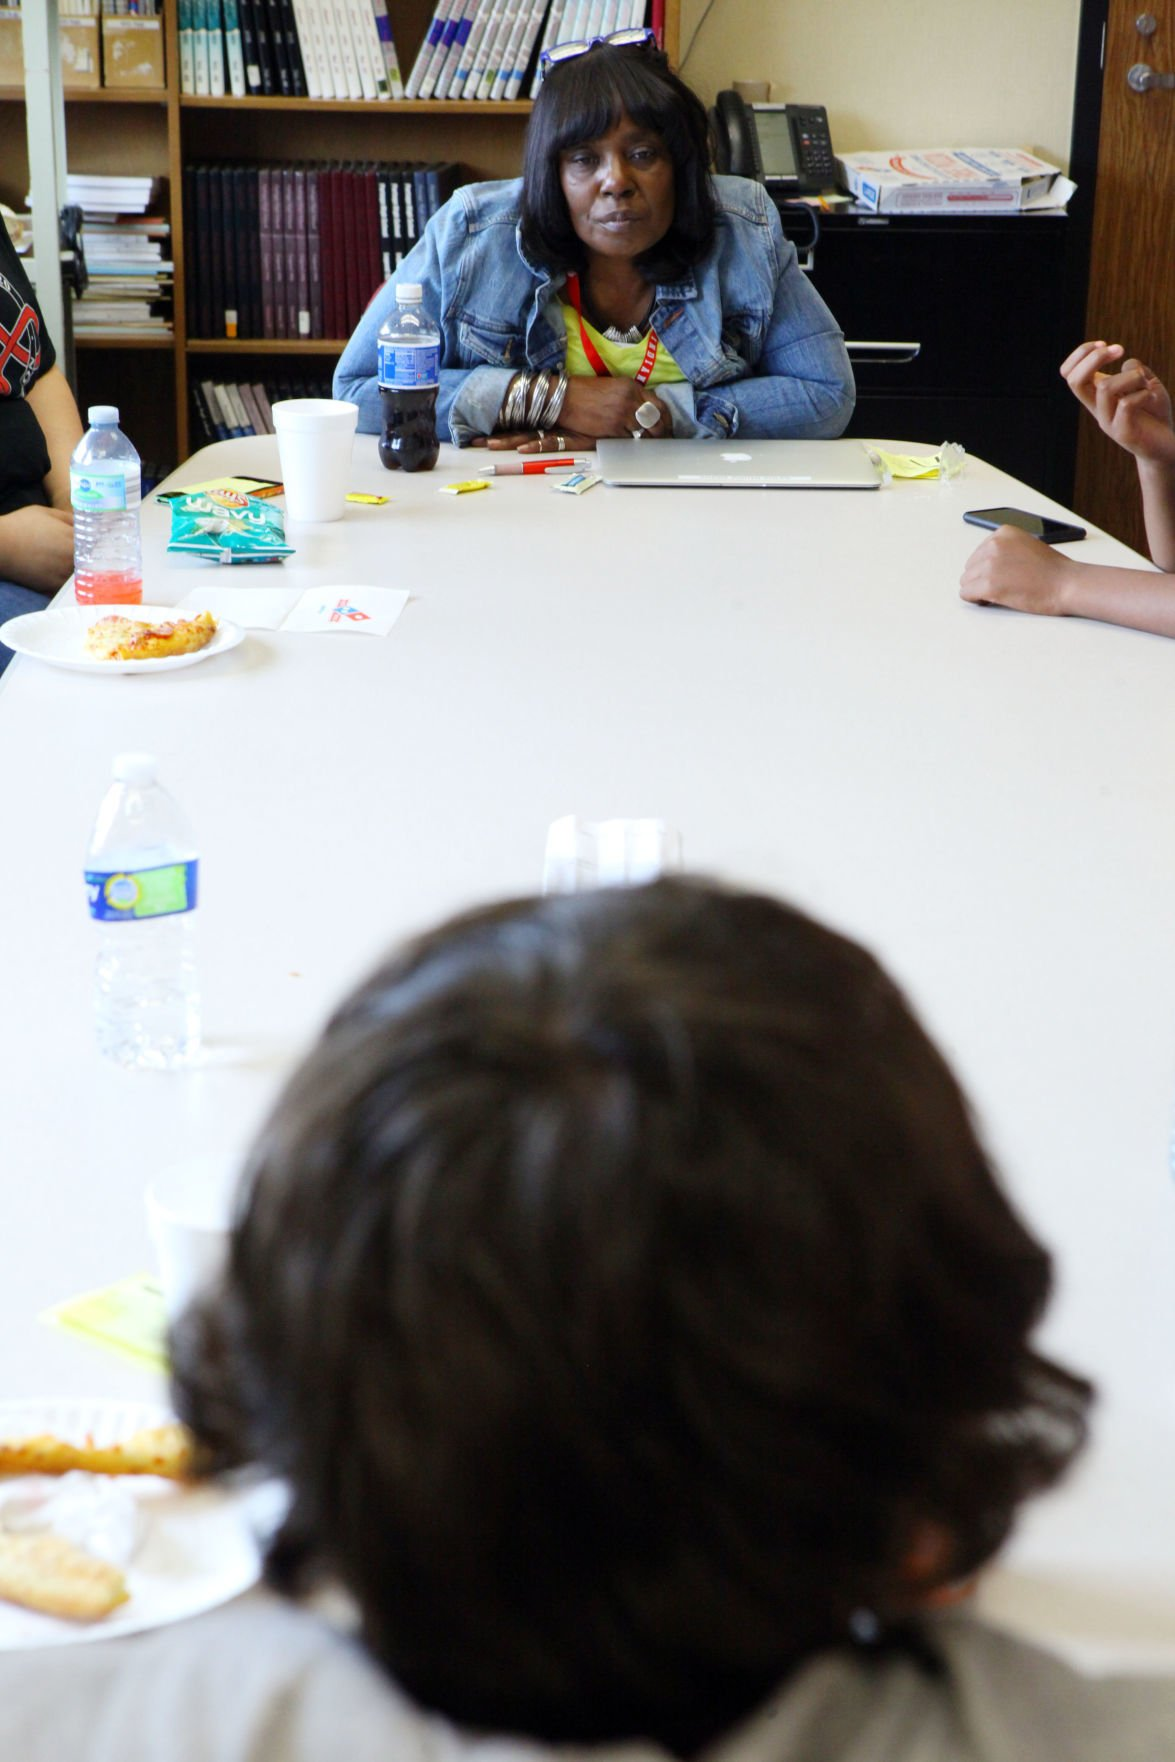 Restorative justice program at Portage High School works to build trust, lower disciplinary problems in troubled students